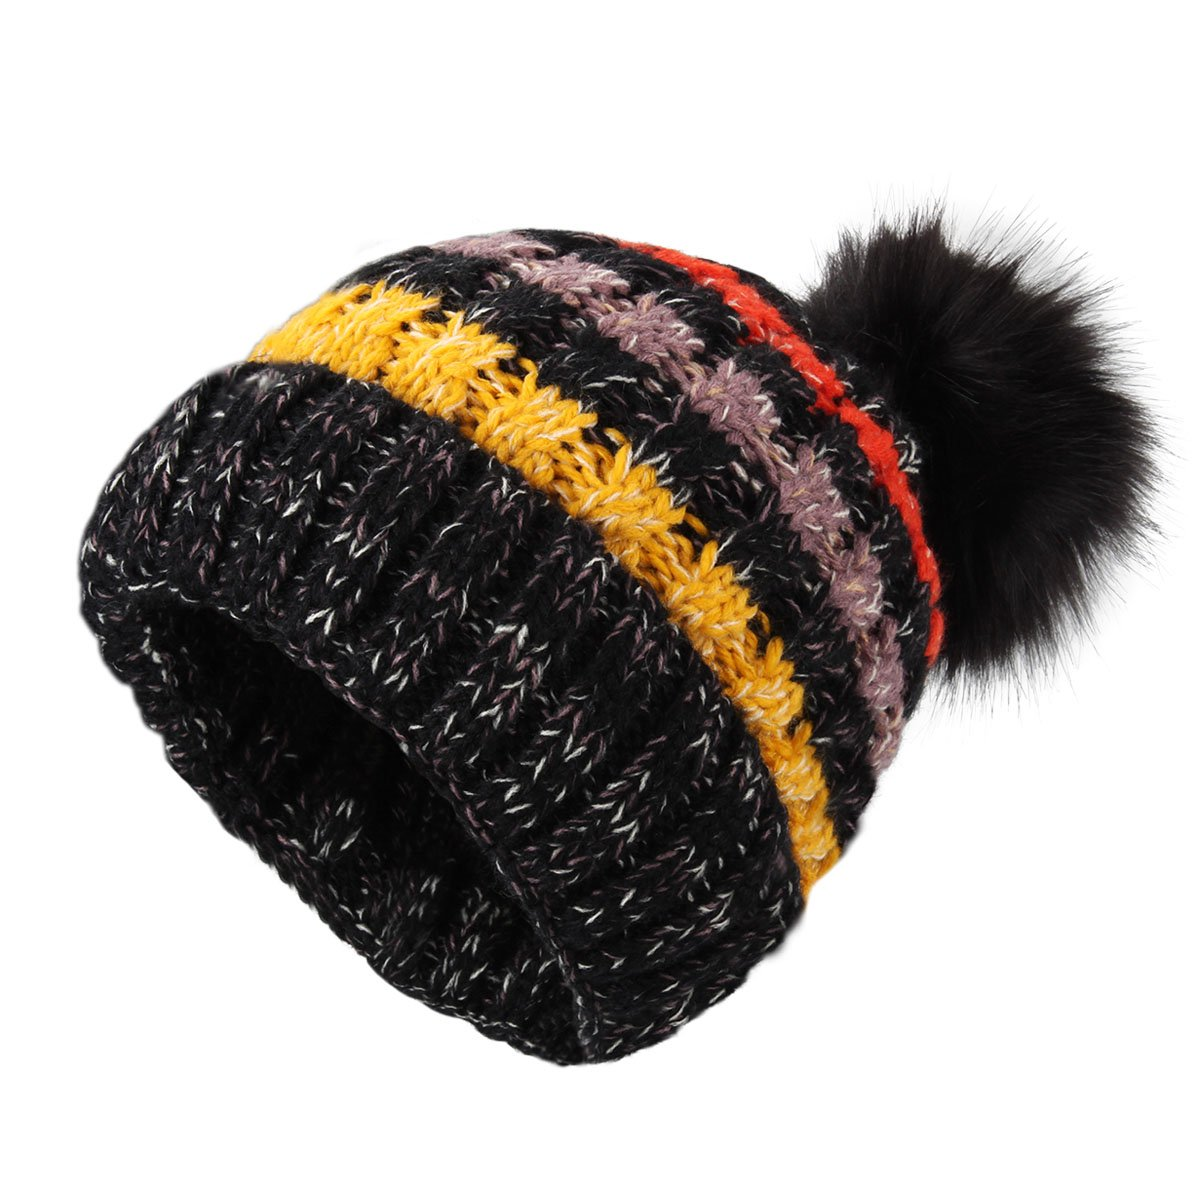 YOPINDO Knitted Hats Girls Ladies Beanie Hat Wool Winter Warm Outdoor Ski  Snowboard Cycle Bobble Hemming 337139c10b8b